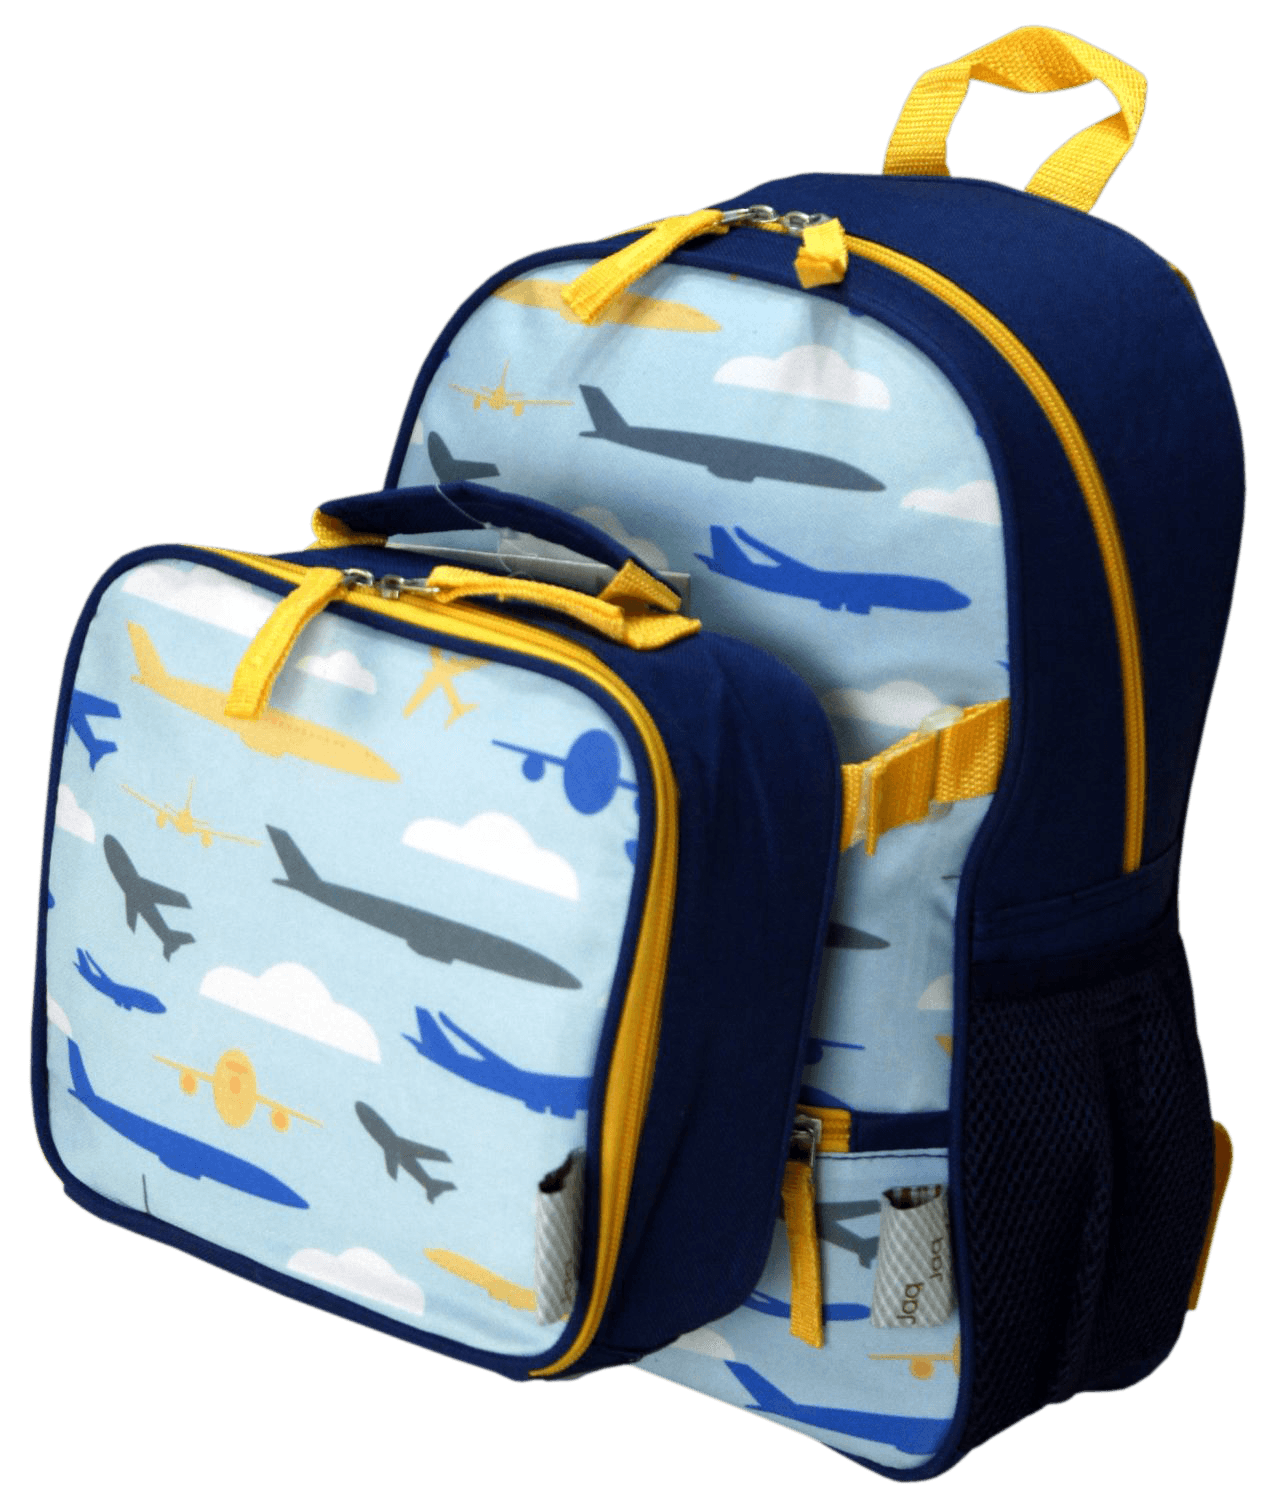 Backpack And Lunch Box PNG Transparent Backpack And Lunch Box